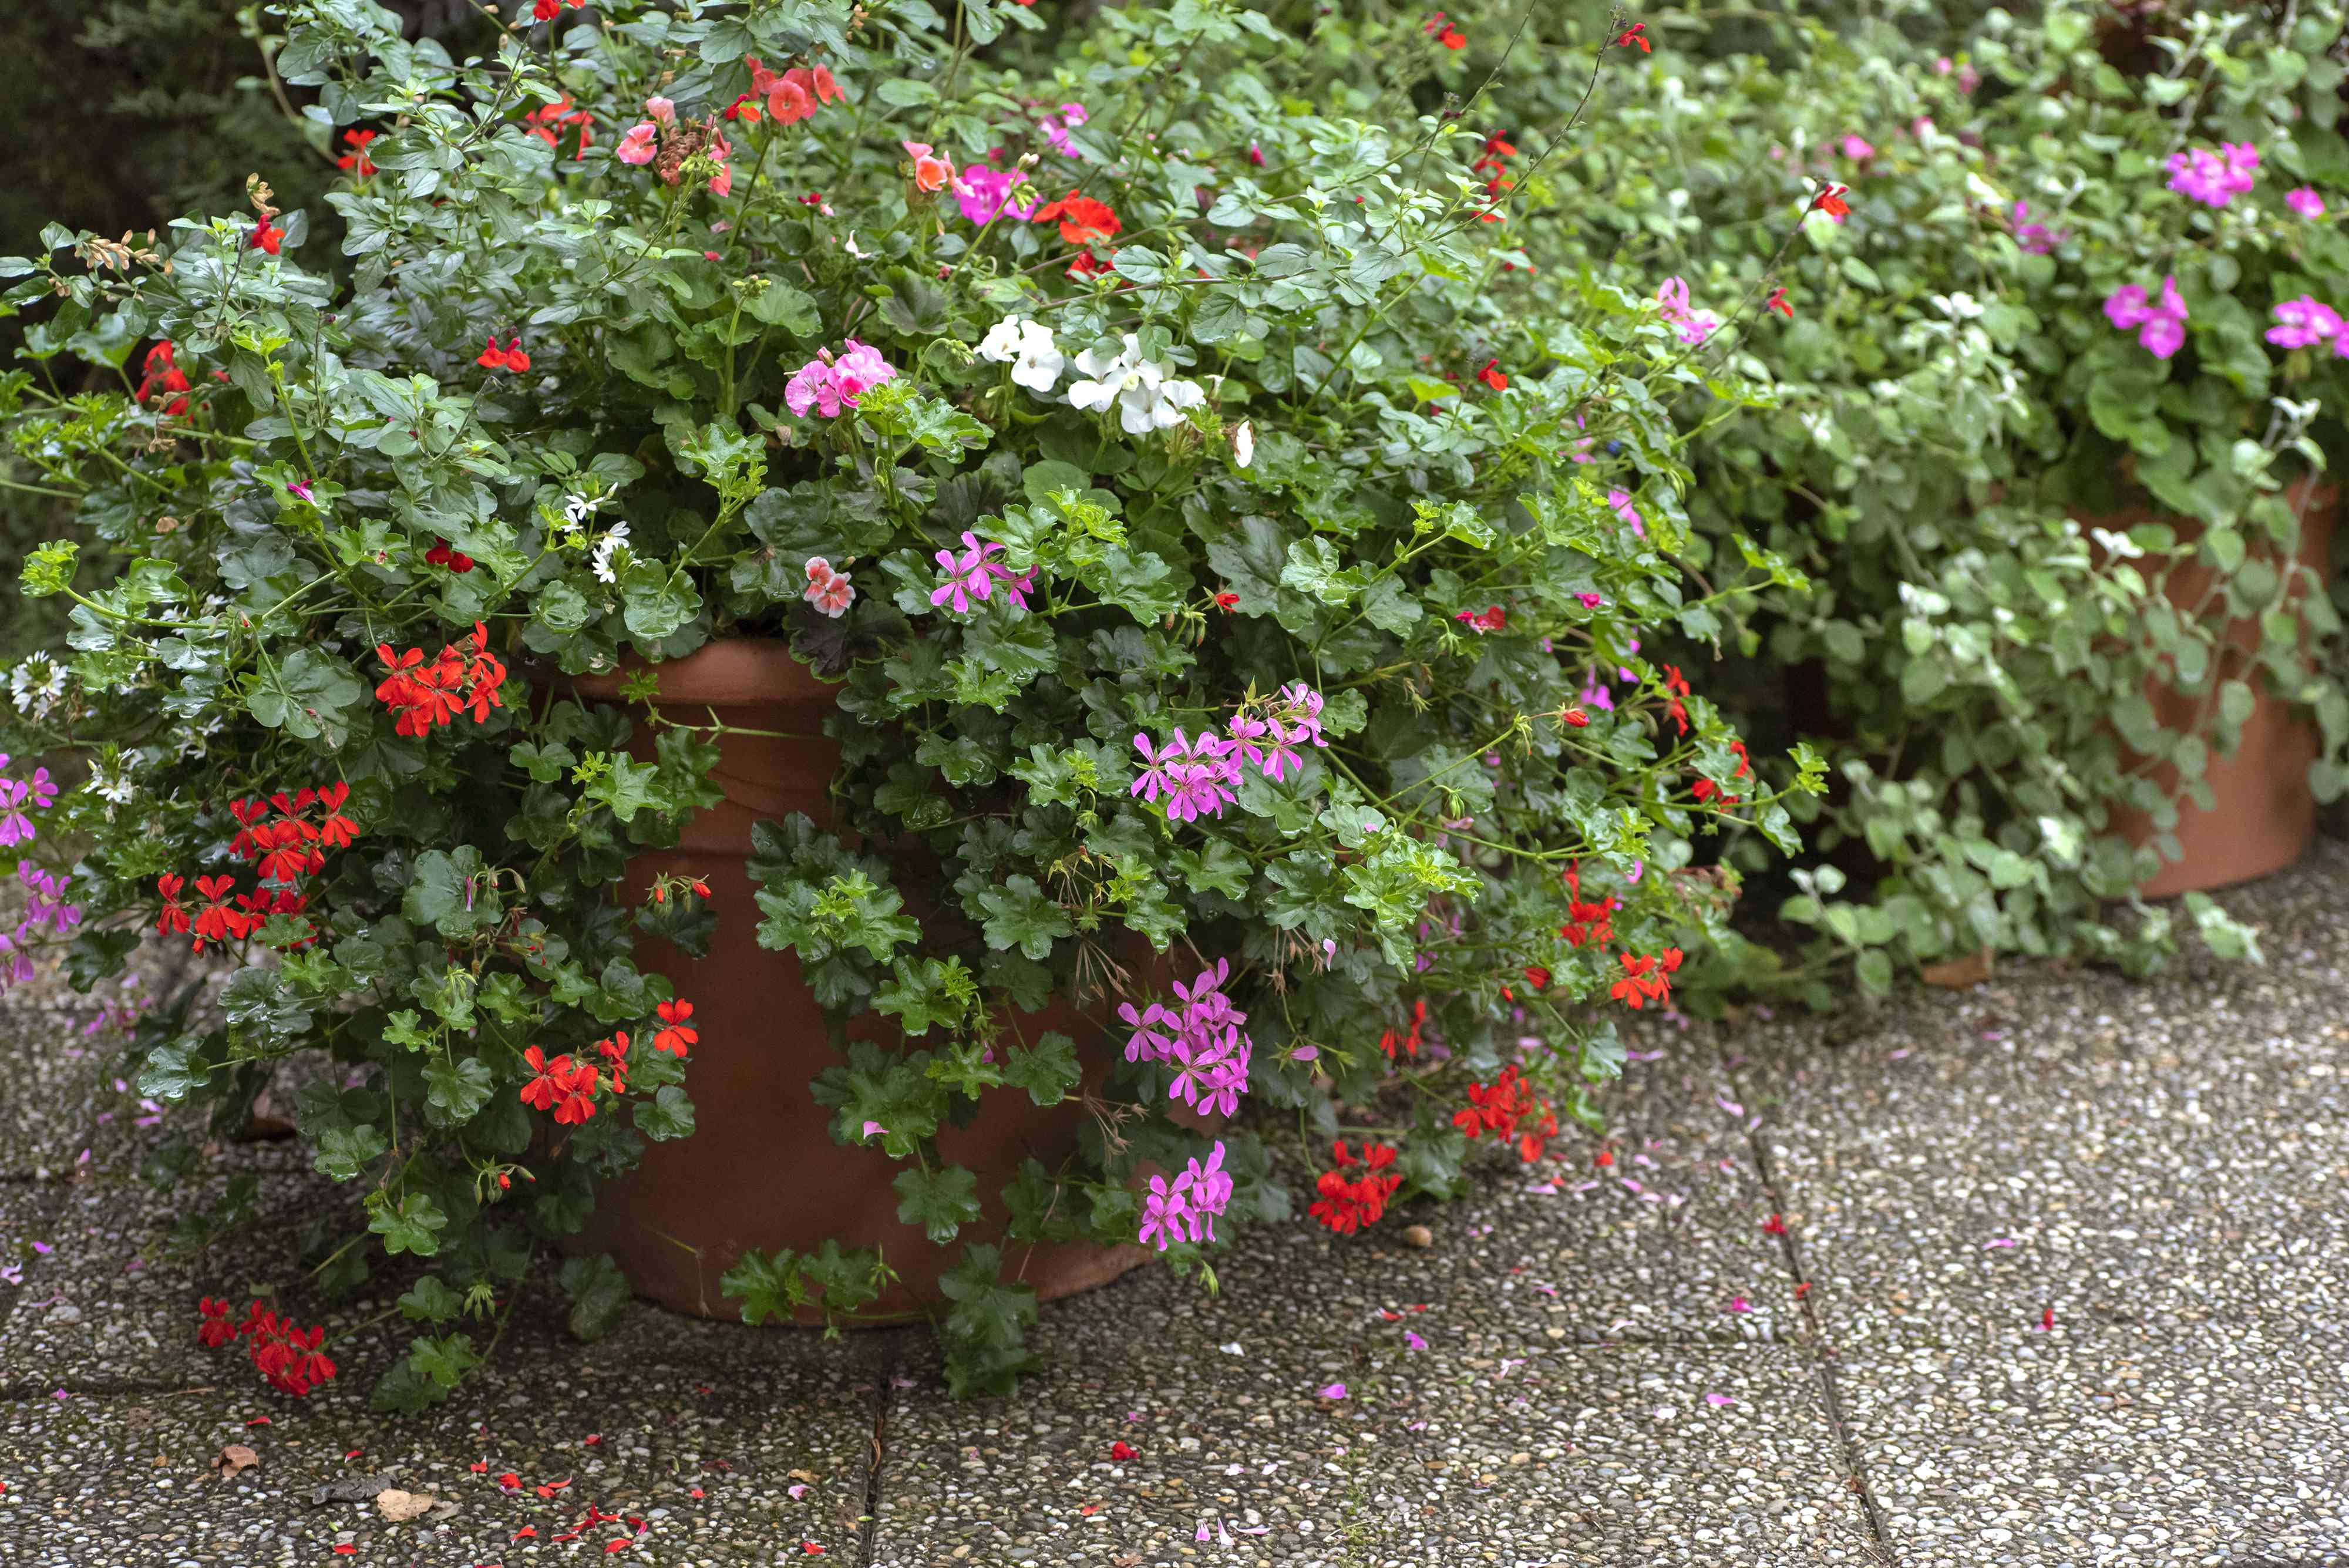 Ivy geranium plants hanging over containers with small pink, red and white flowers and circular leaves